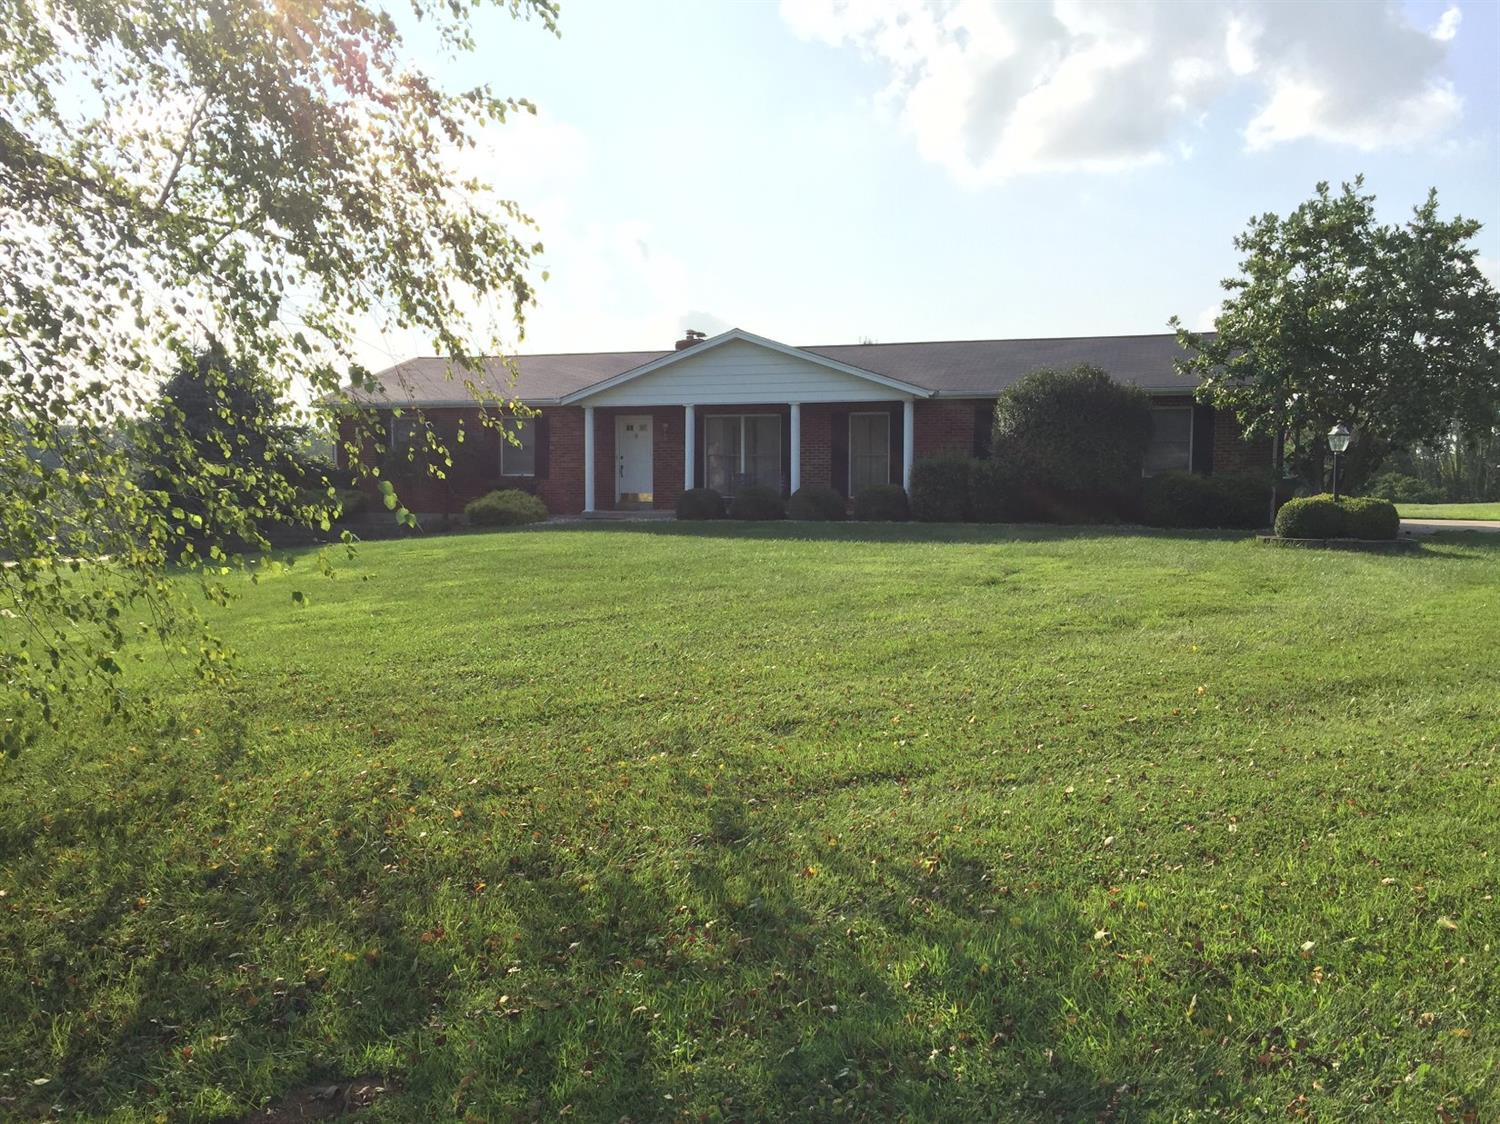 Photo 1 for 1700 Walton Nicholson Rd Walton, KY 41094